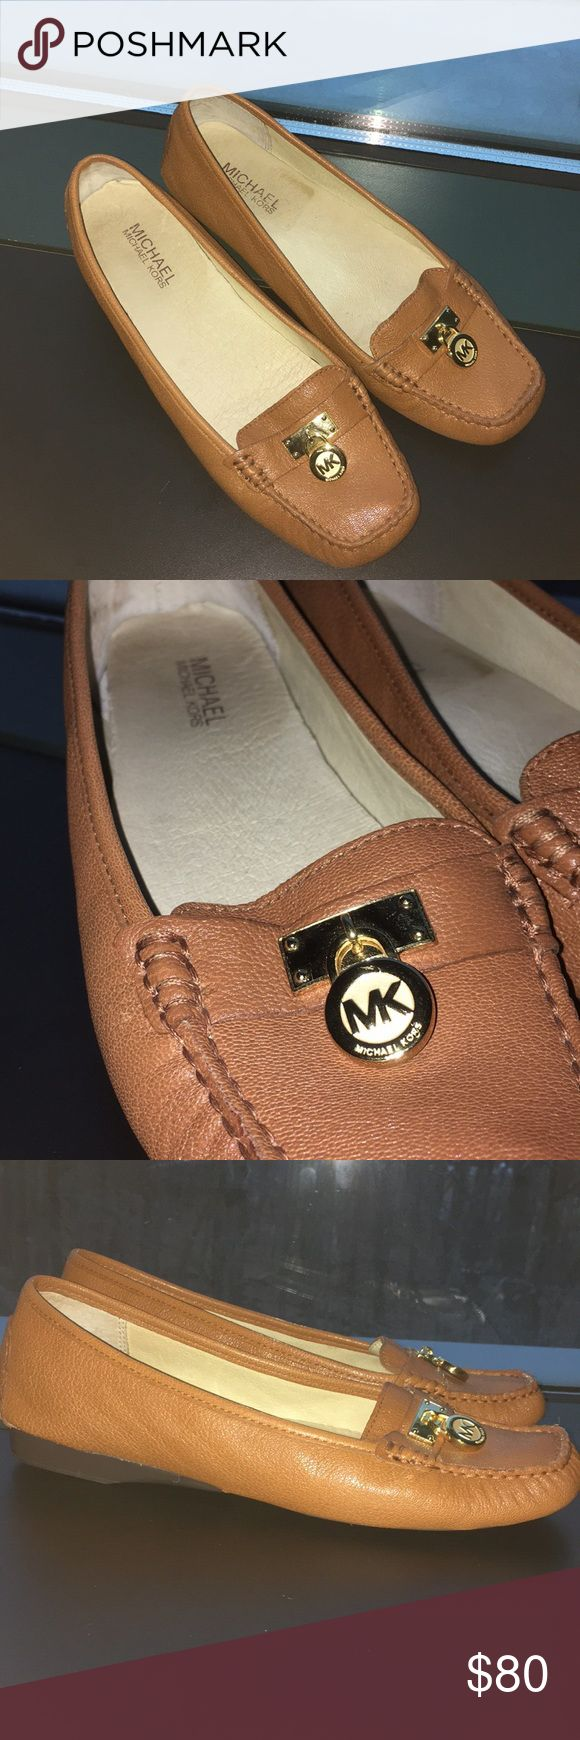 Michael Kors tan loafers These tan loafers are in impecable condition! No scratches or visible damage to the outside material, and the bottoms look like they were never worn. Extremely comfy padding on the inside and the threading is as good as new! MICHAEL Michael Kors Shoes Flats & Loafers